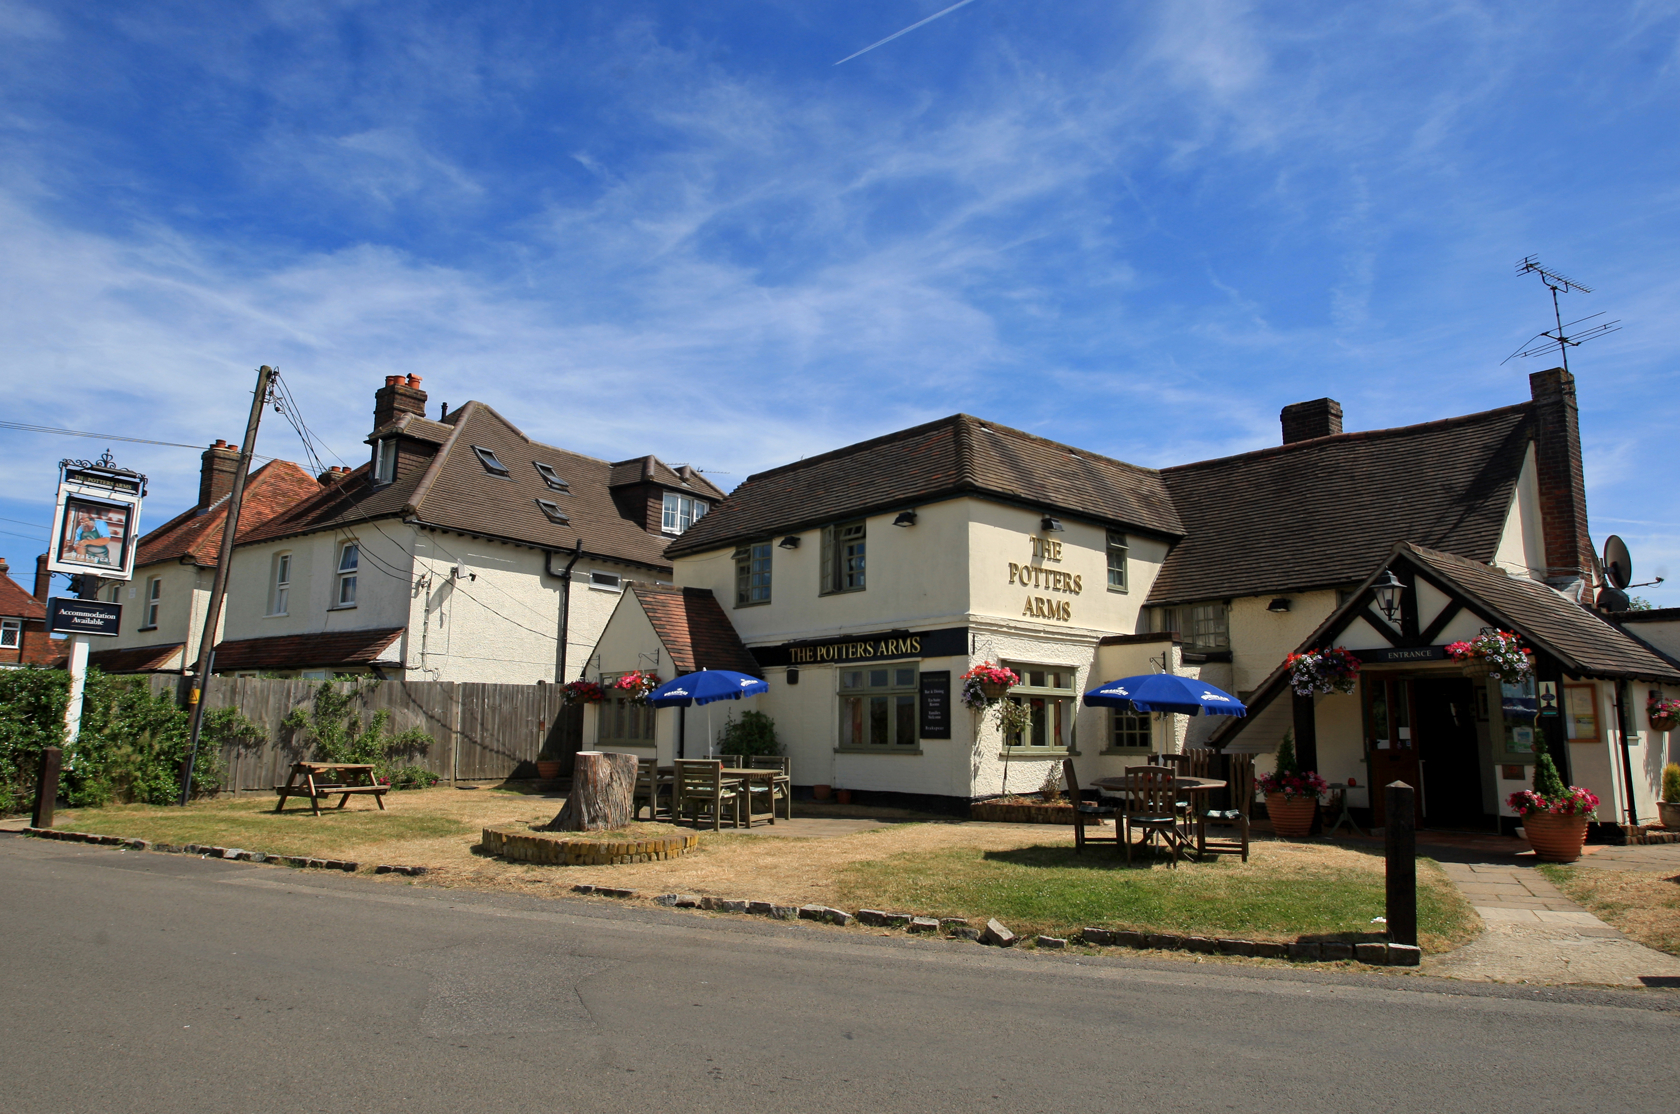 The Potters Arms, Winchmore Hill